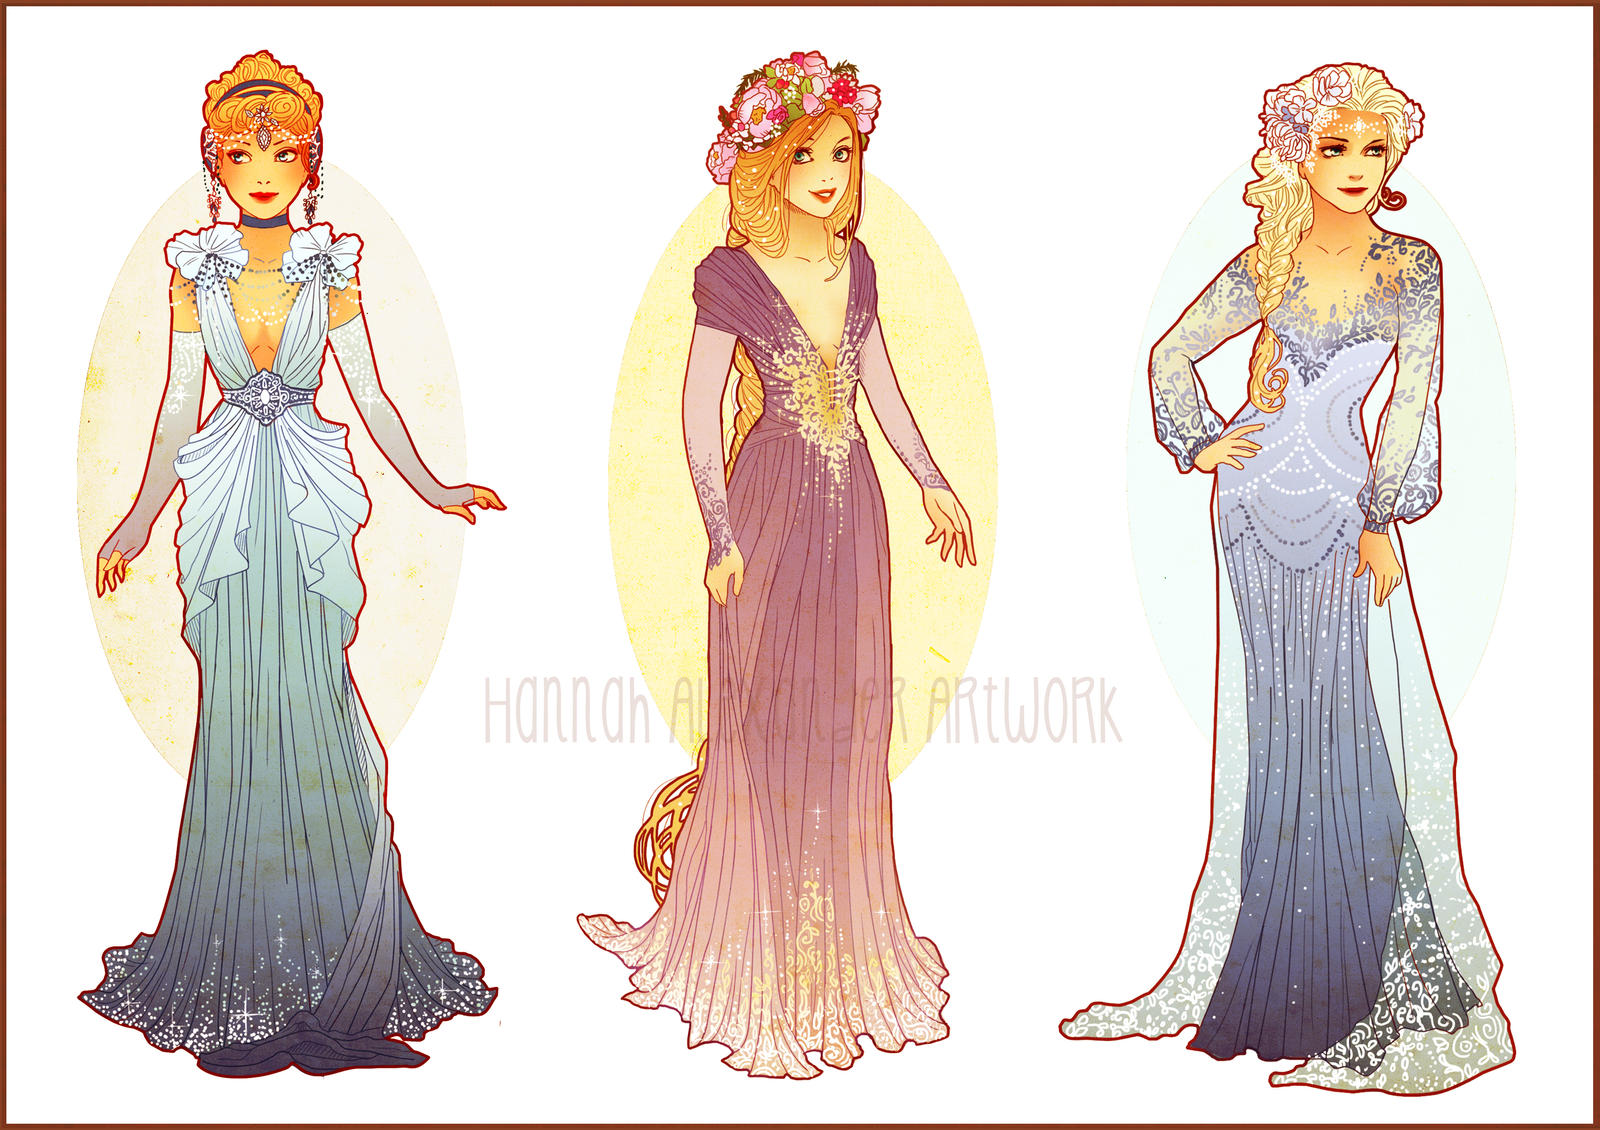 Art Nouveau Costume Designs Ii By Hannah Alexander On Deviantart